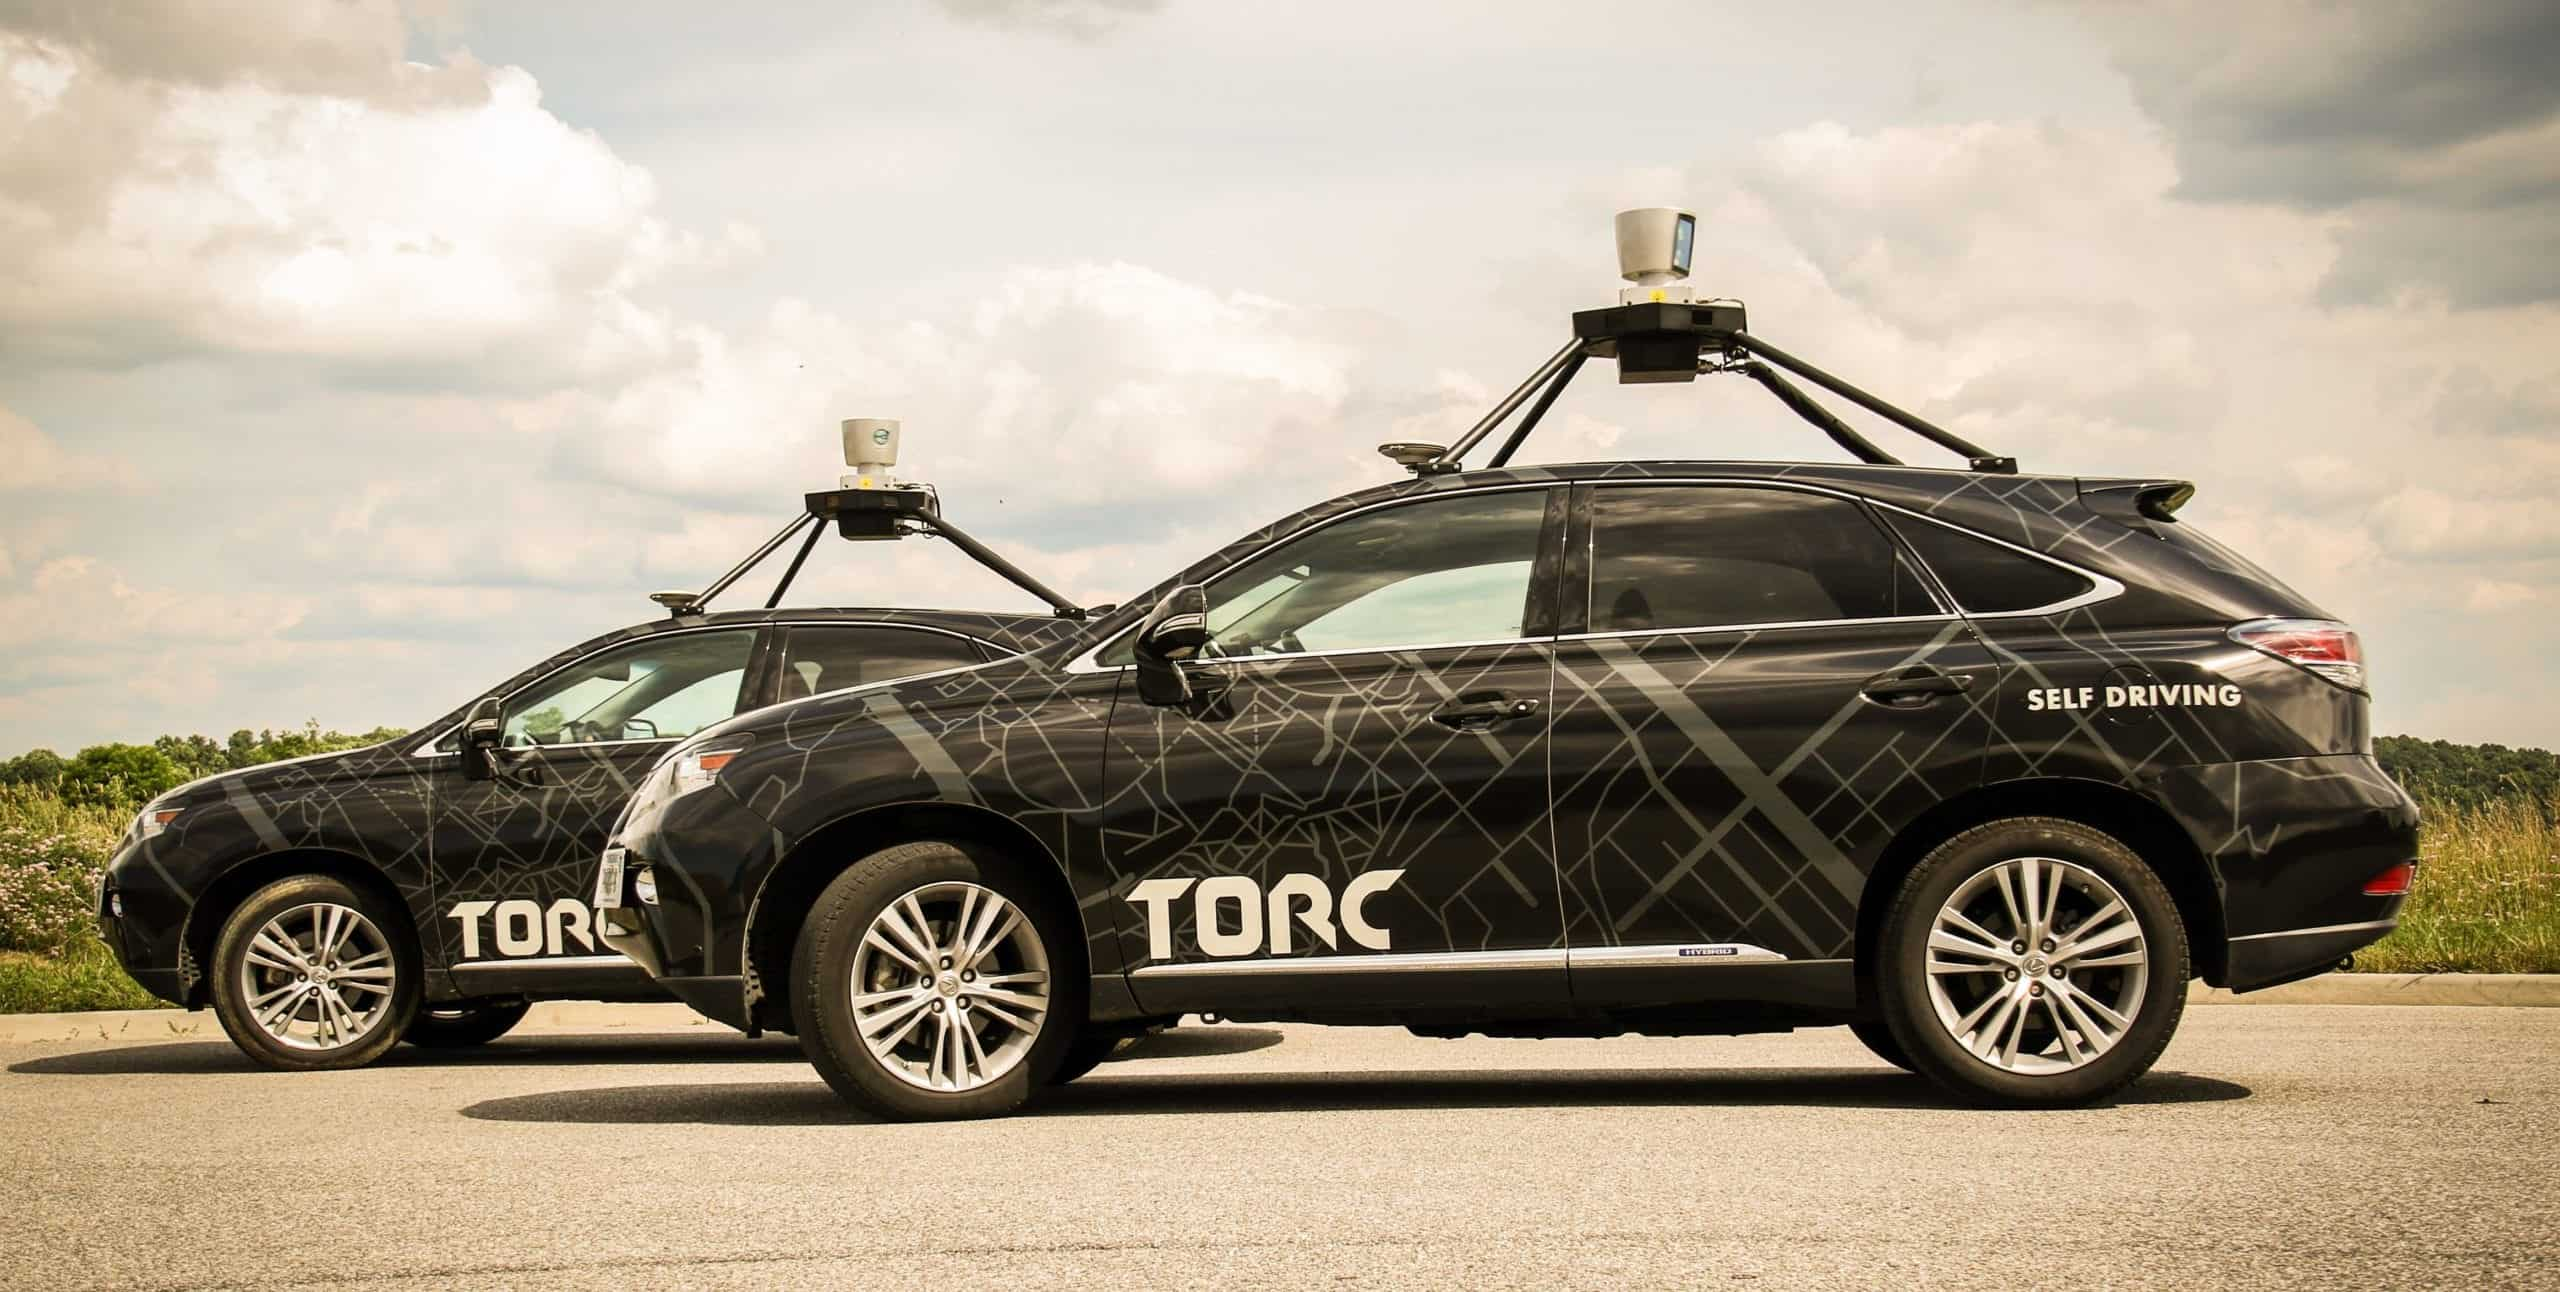 Torc Robotics Self-Driving Car